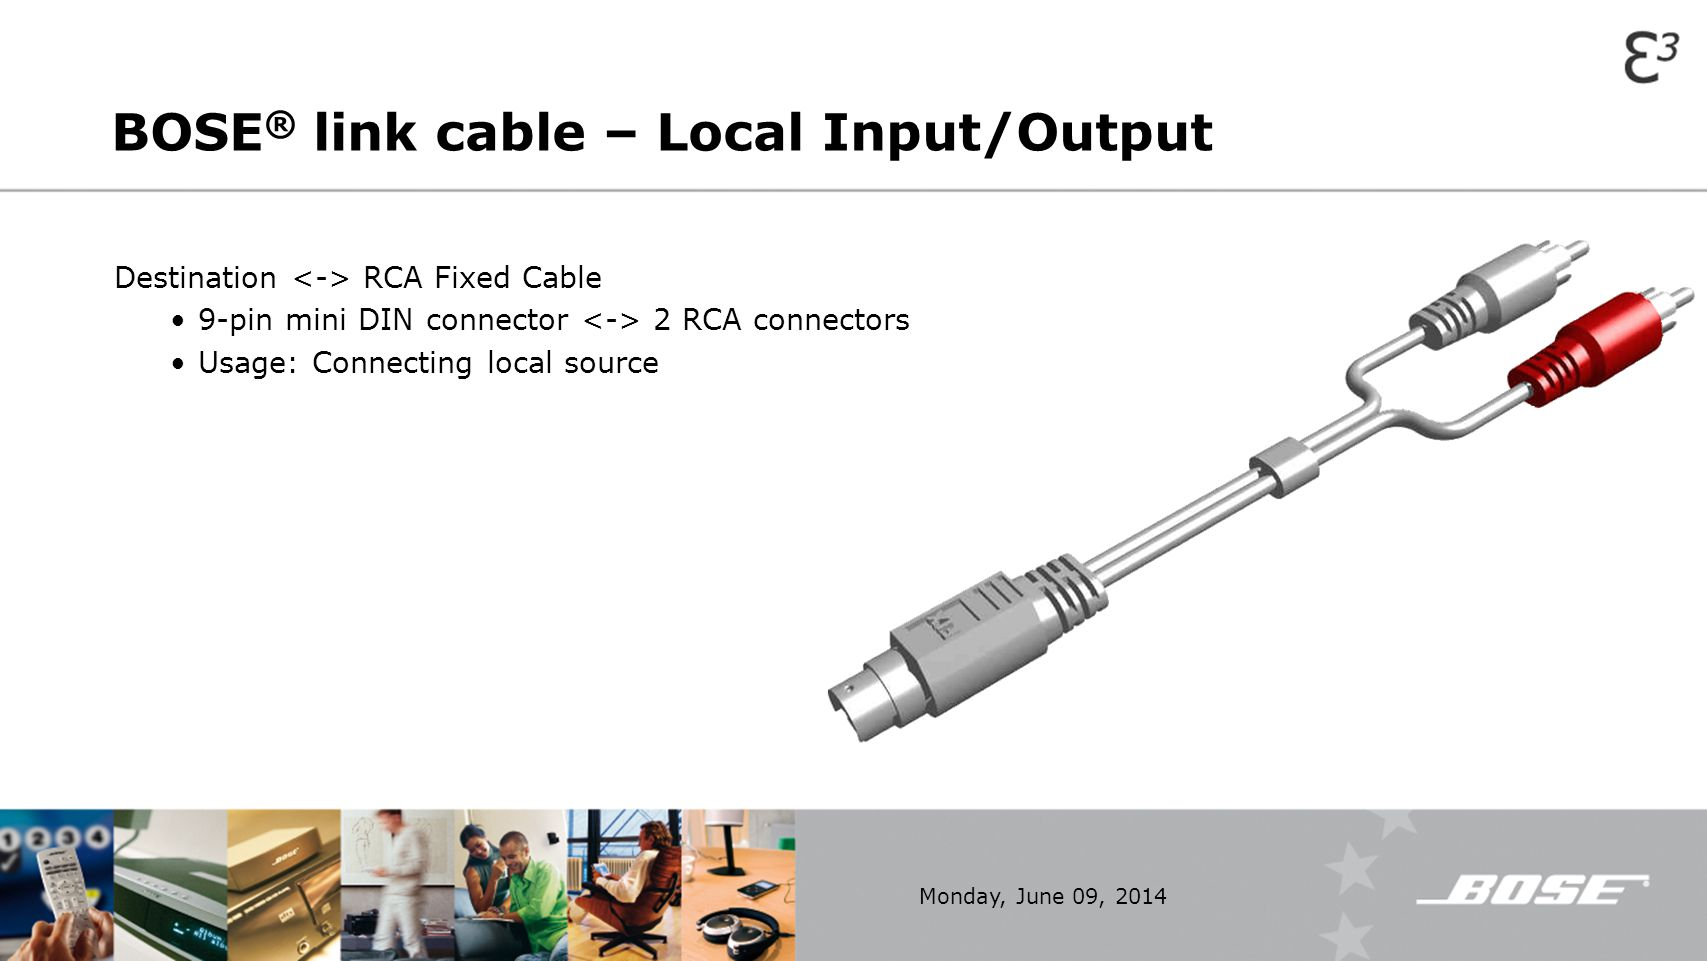 BOSE® link cable – Local Input/Output